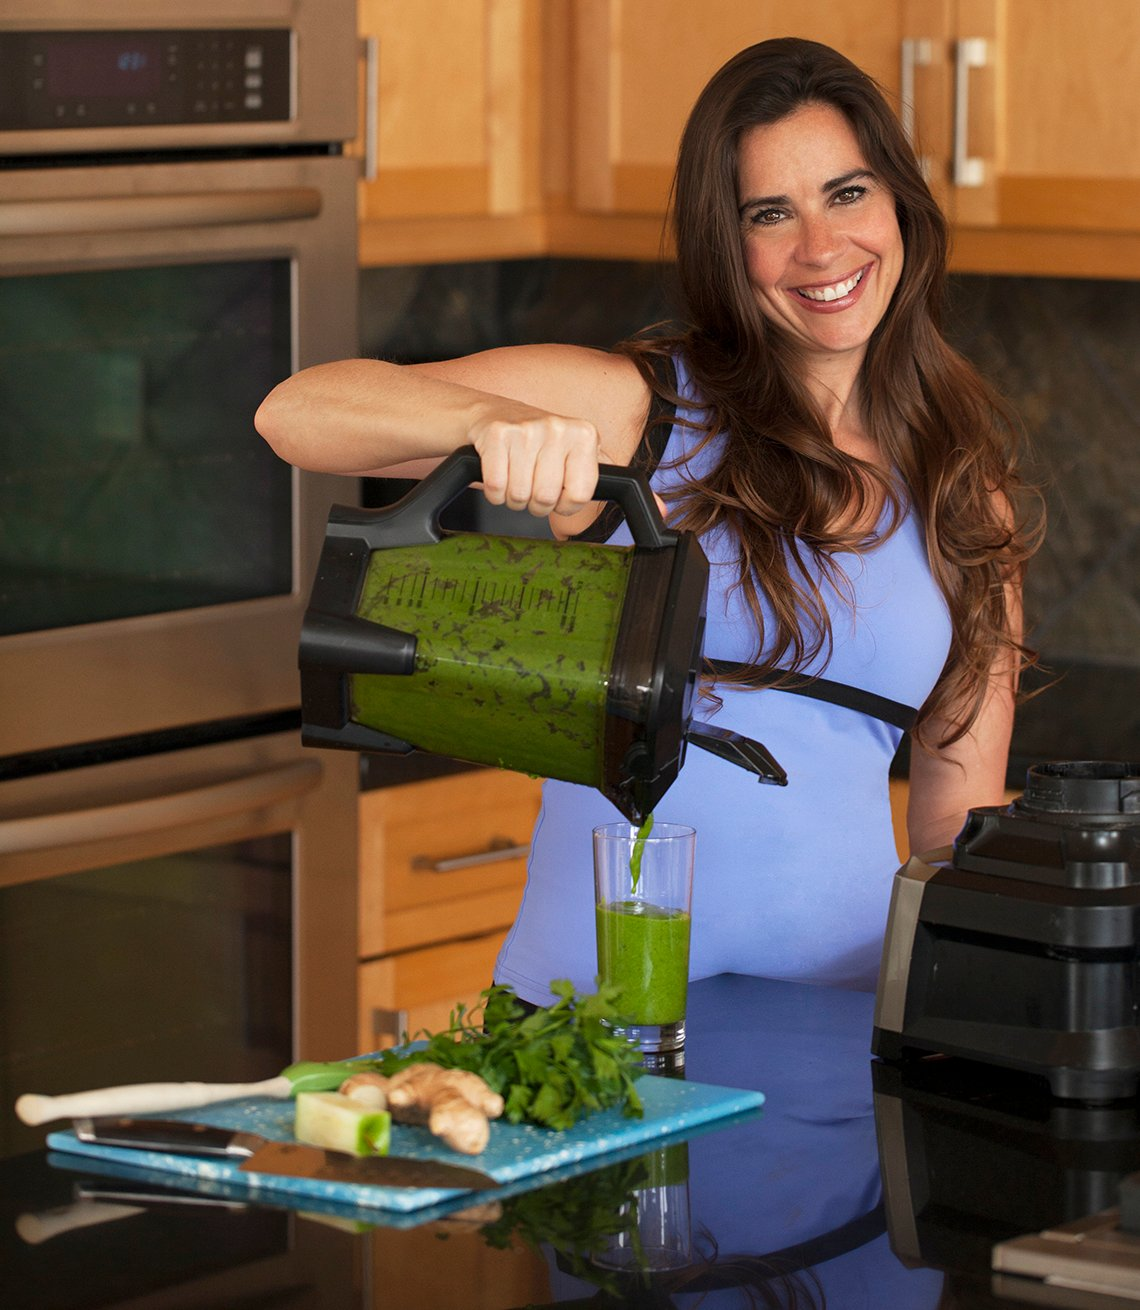 devin alexander in the kitchen pouring a blender full of happy tummy greens juice